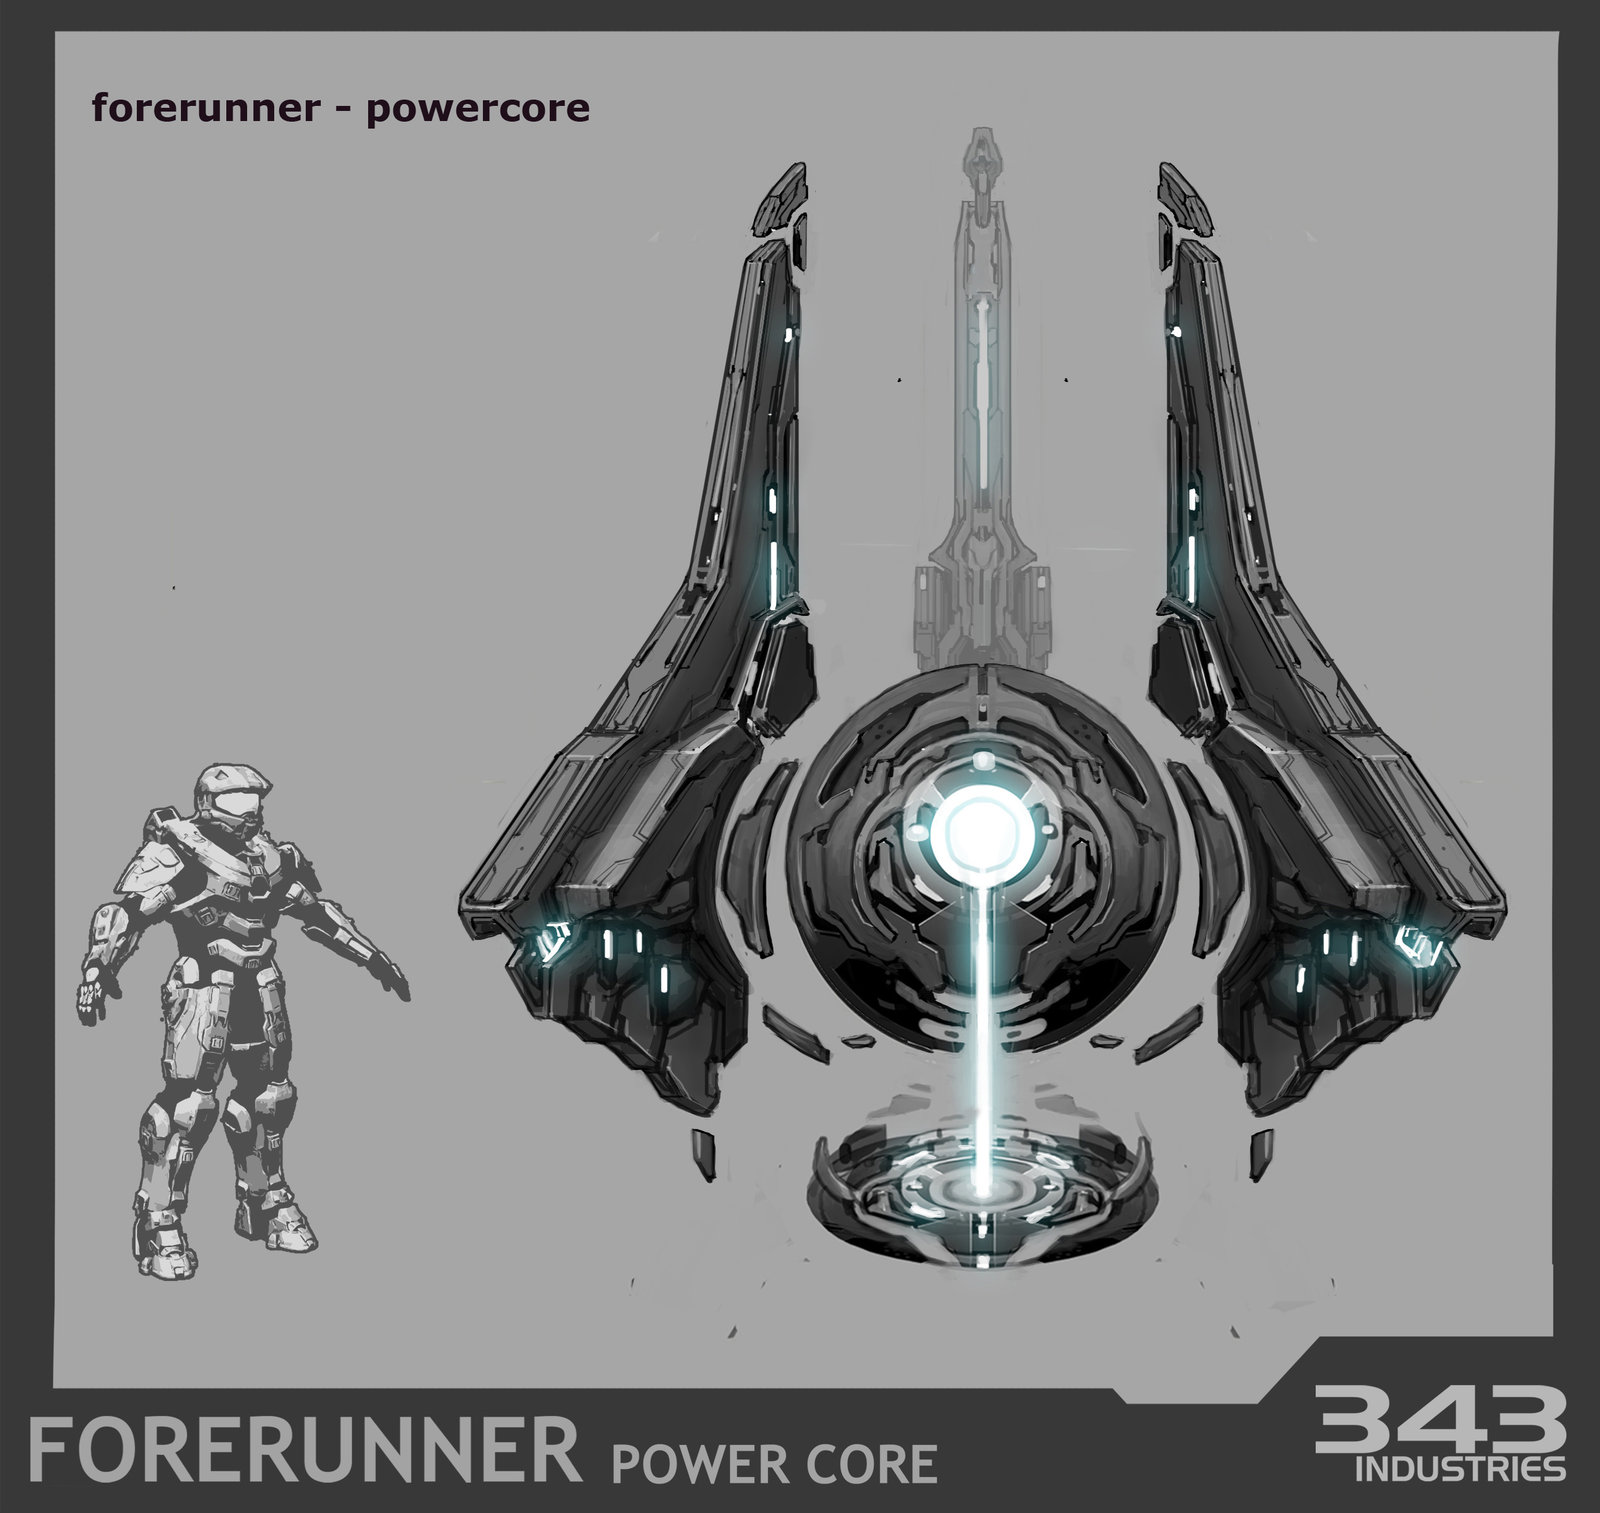 Forerunner Power Core for Halo 4